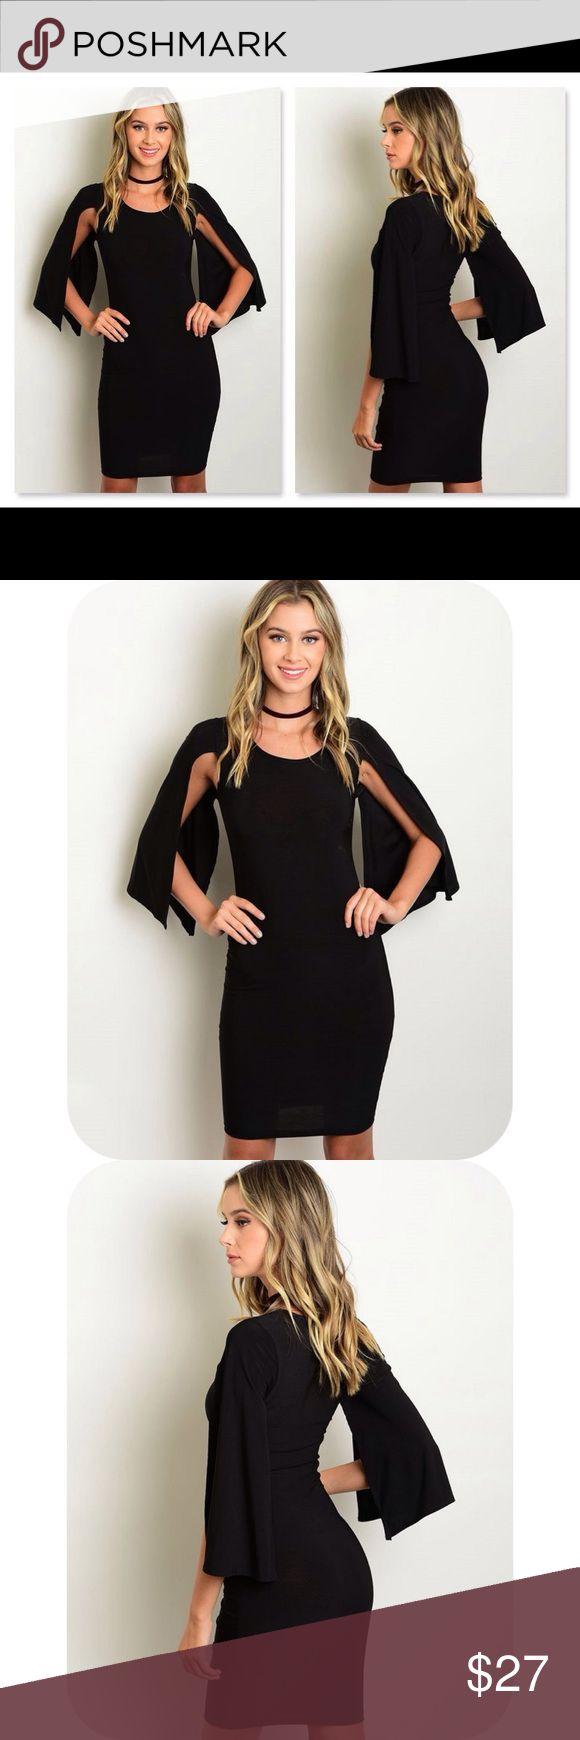 STUNNING BLACK BODYCON DRESS W/CAPE STYLE SLEEVES NWOT and made by auditions.  This stunning dress is done in black with a scoop neck, body hugging fit with open, cape style sleeves.  It hugs every curve and is quite stretchy.  It is made of 96% polyester and 4% spandex Dresses